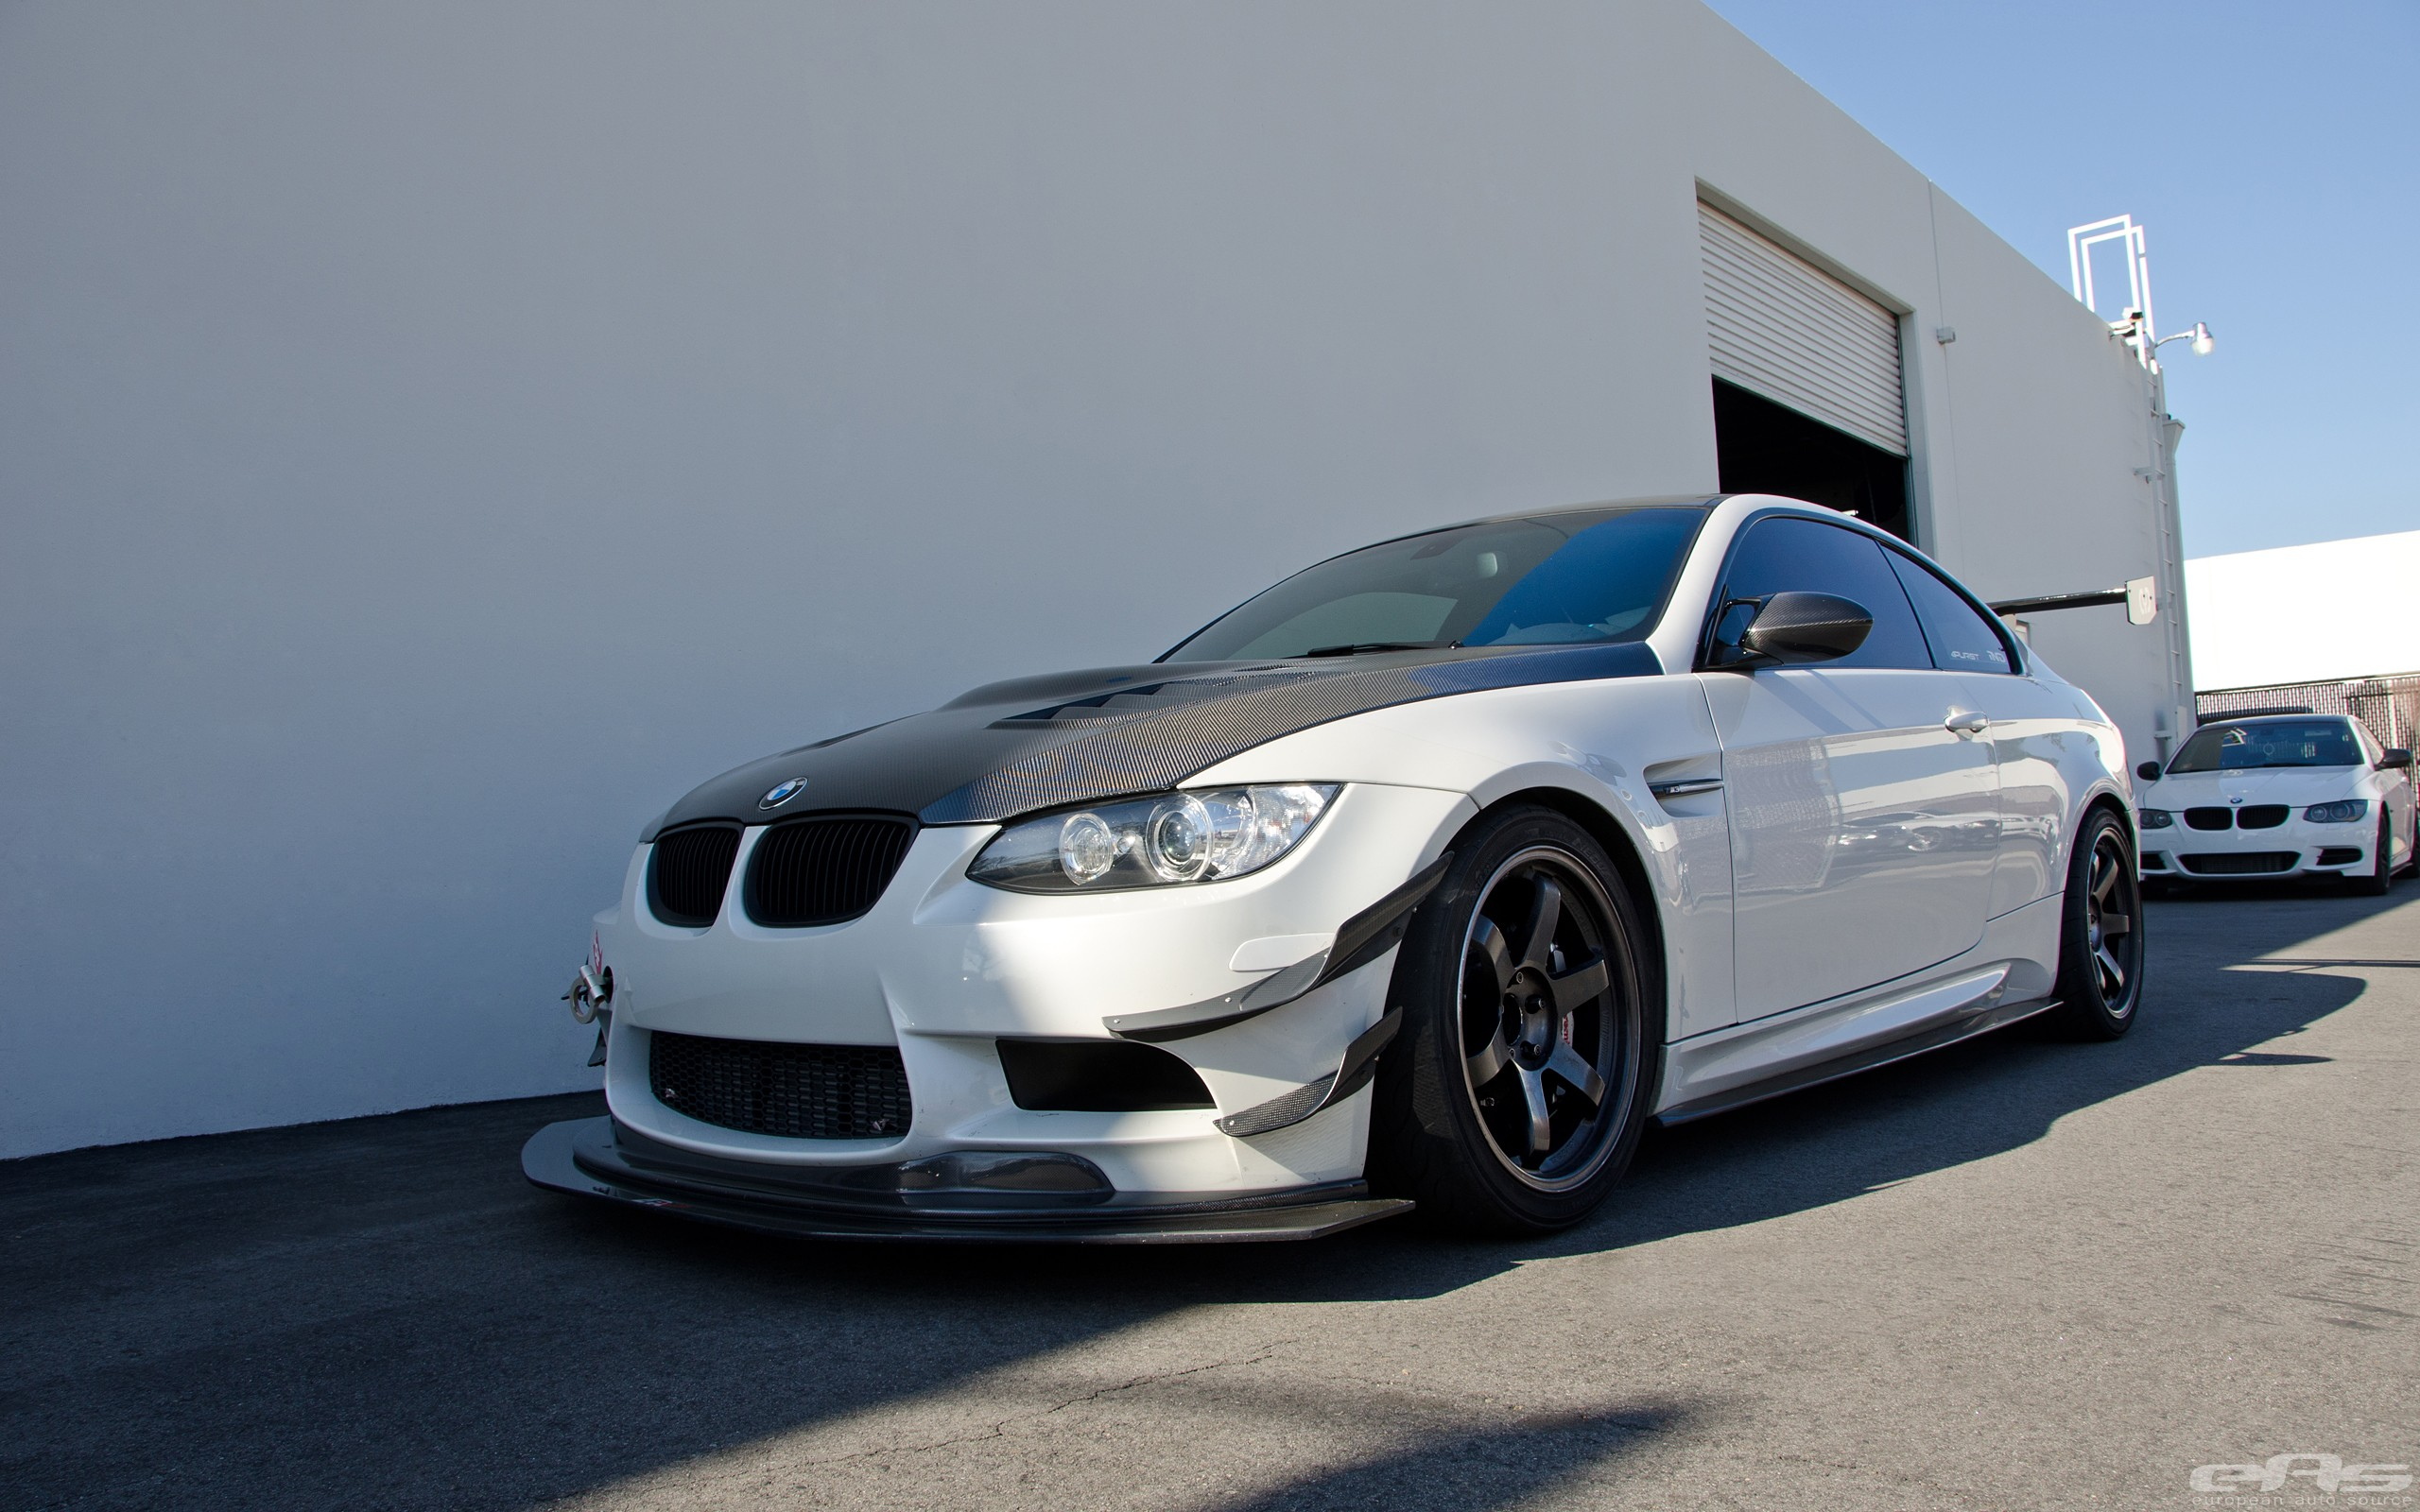 bmw feel competition you showthread avant if text re sale to thanks for free forums hypersilver garde wheels interested